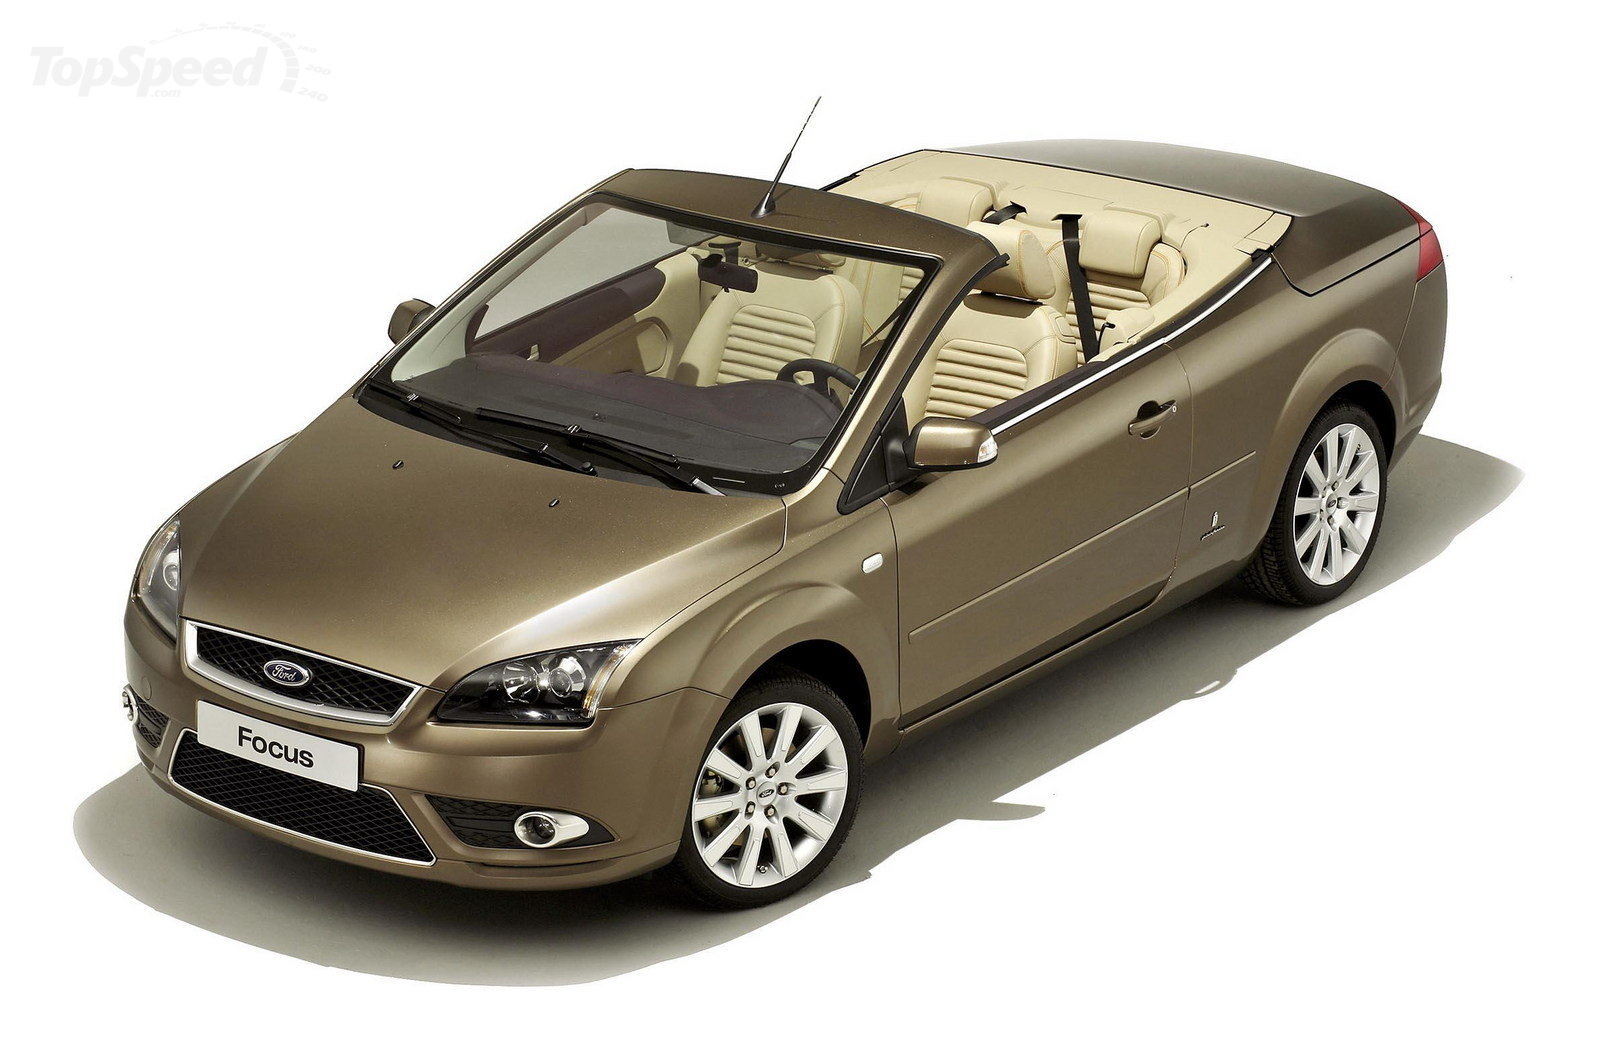 ford focus coupe convertible prices announced news top speed. Black Bedroom Furniture Sets. Home Design Ideas